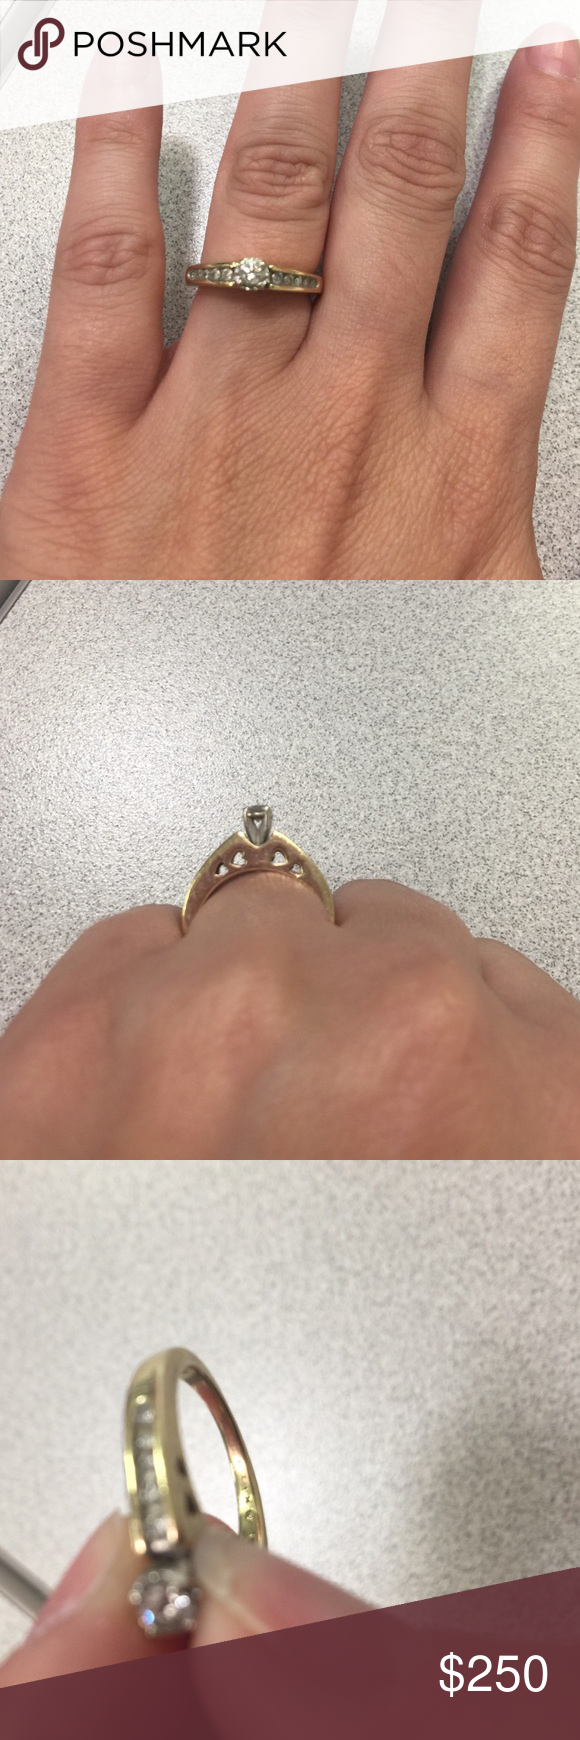 10k gold diamond engagement ring. This is another old ring from my previous marriage that I just no longer need in my life. Im sure what the carats are on it all. I got this in high school 10 years ago. I wanna say it is about a size 6. Its a very cute dainty ring for a promise ring. Jewelry Rings